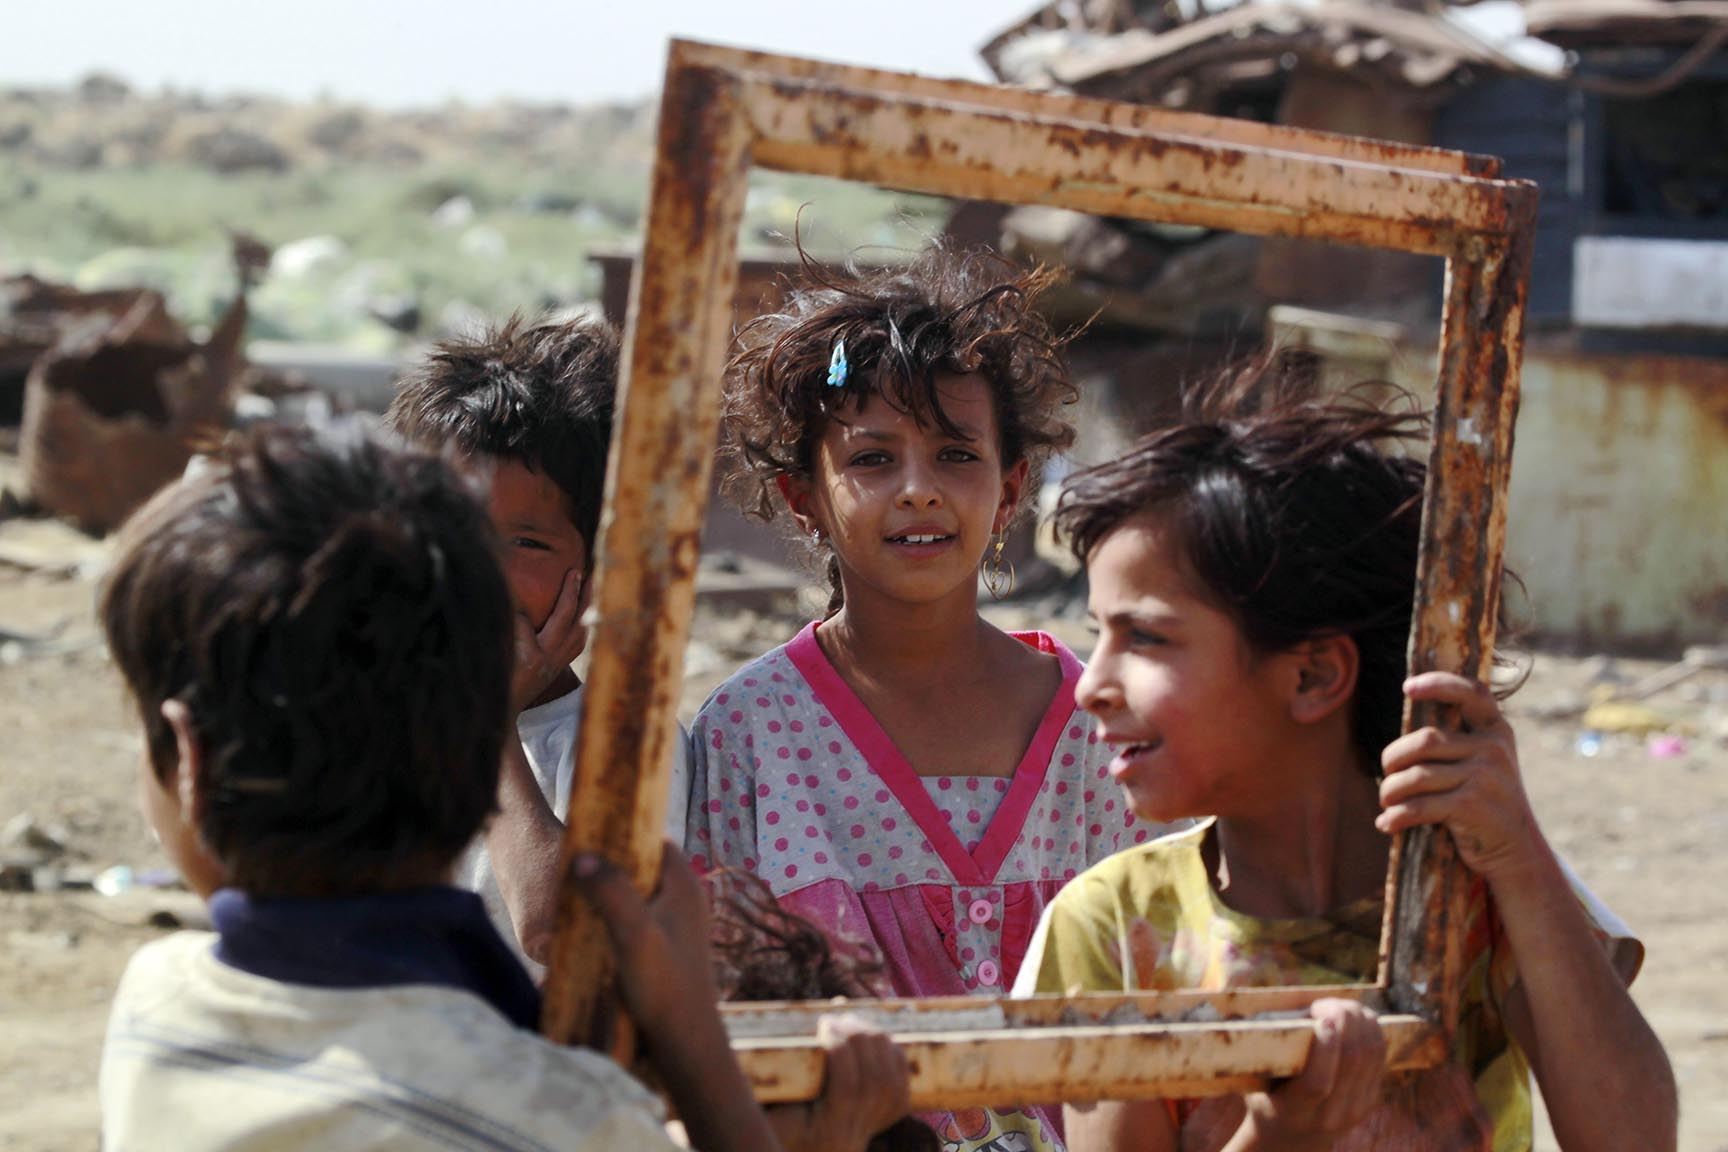 Iraqi children hold an empty frame at a garbage dump